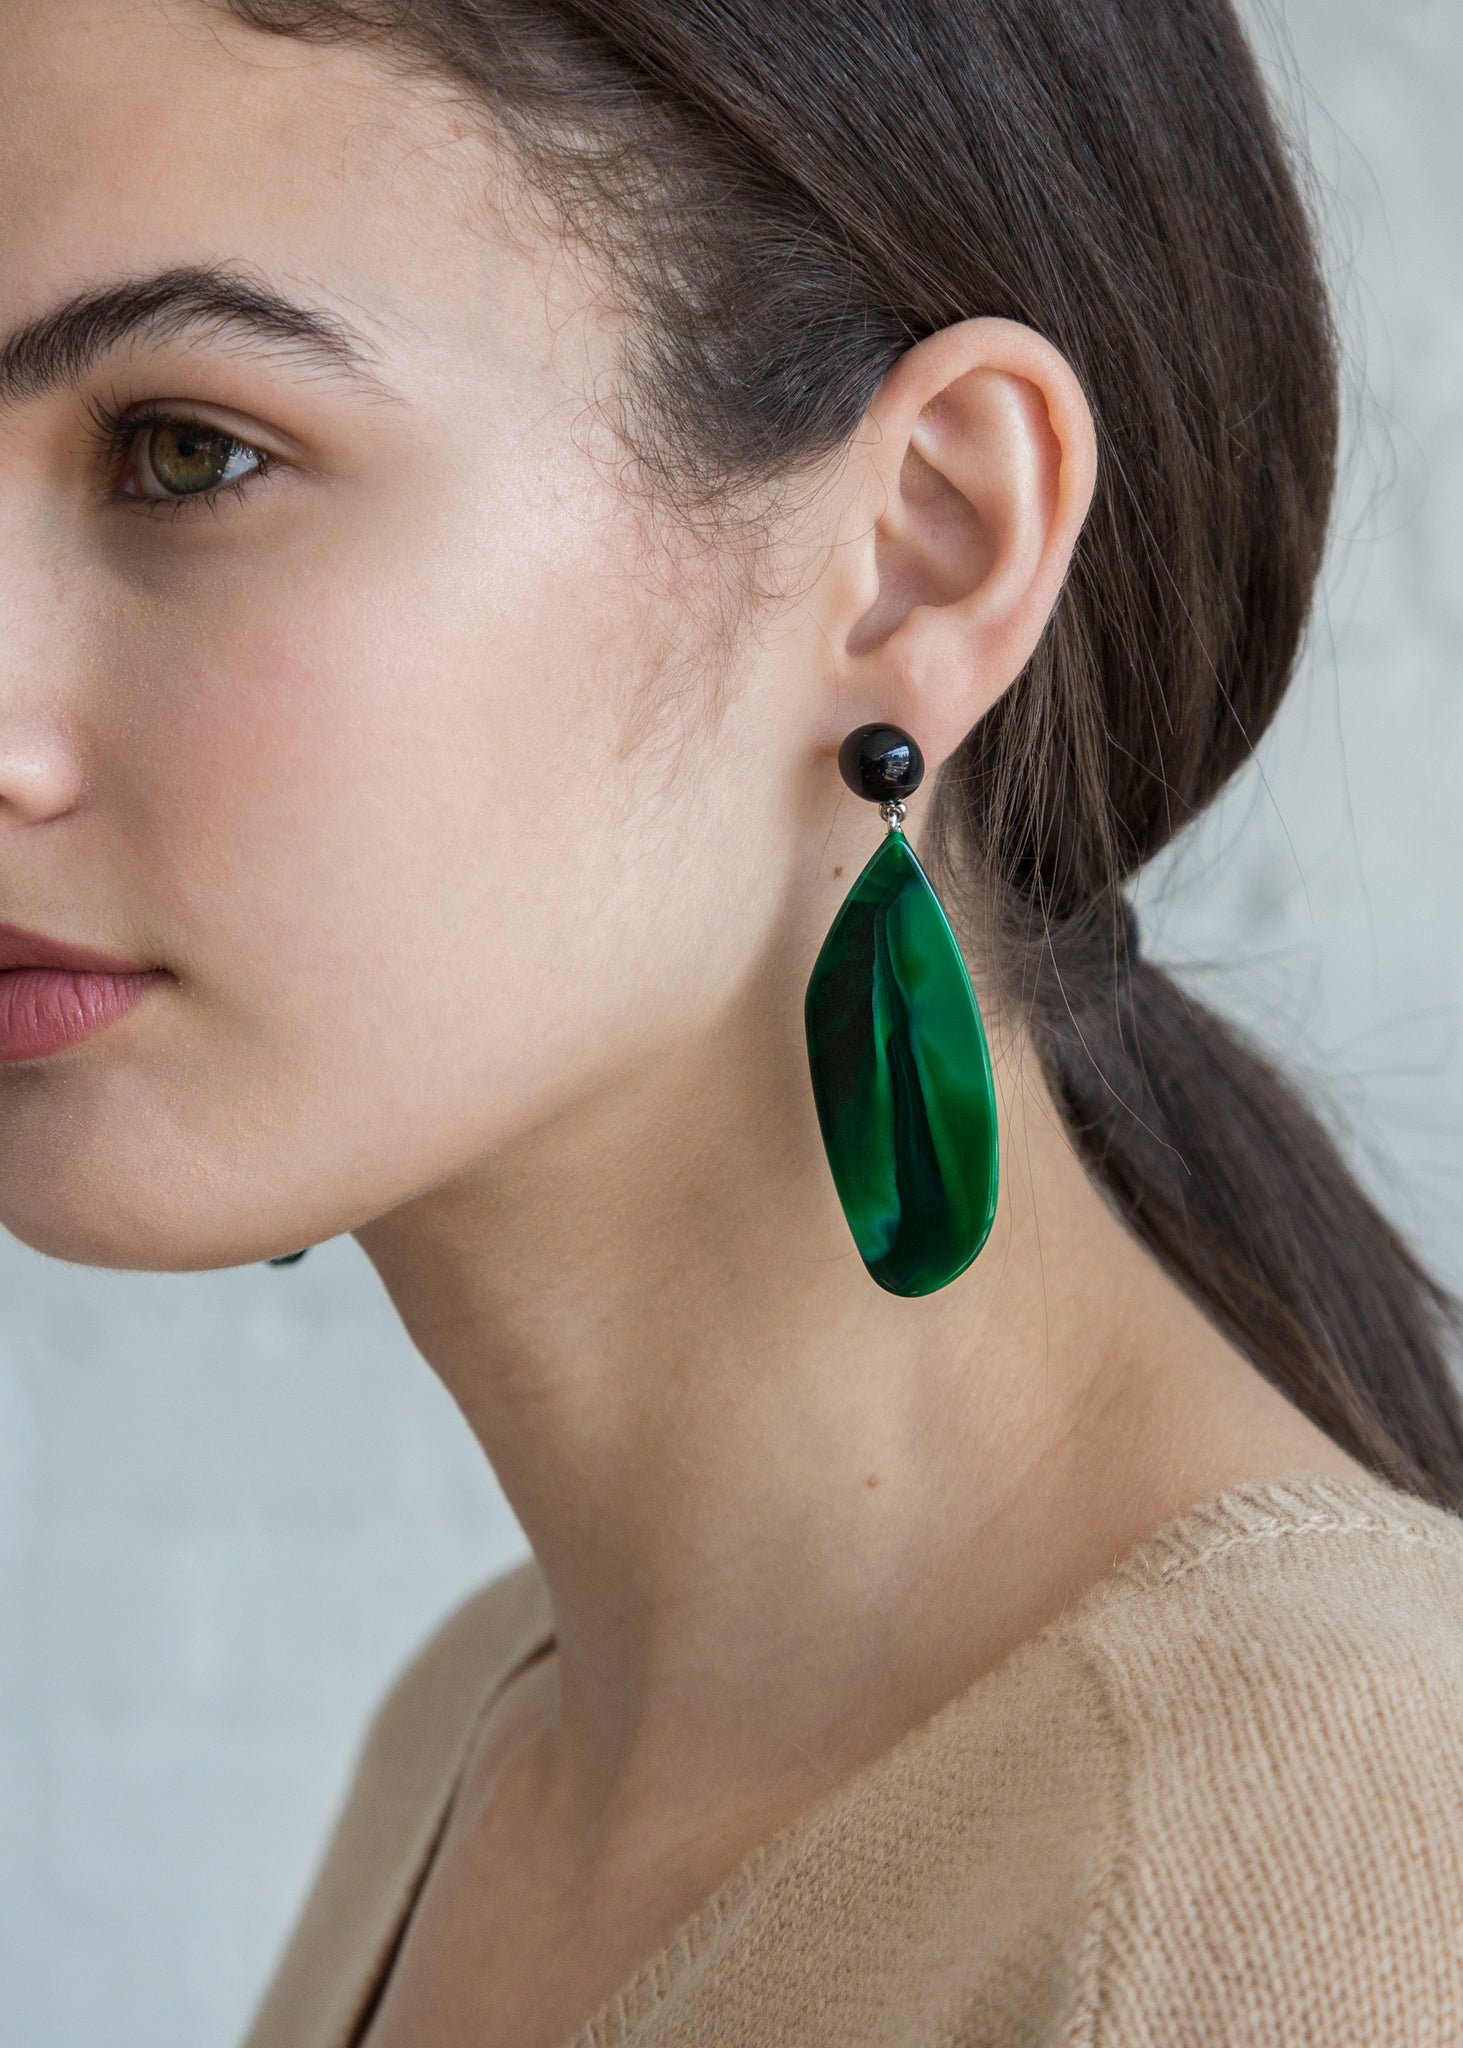 Splitleap Earrings in Malachite/Black - SOLD OUT